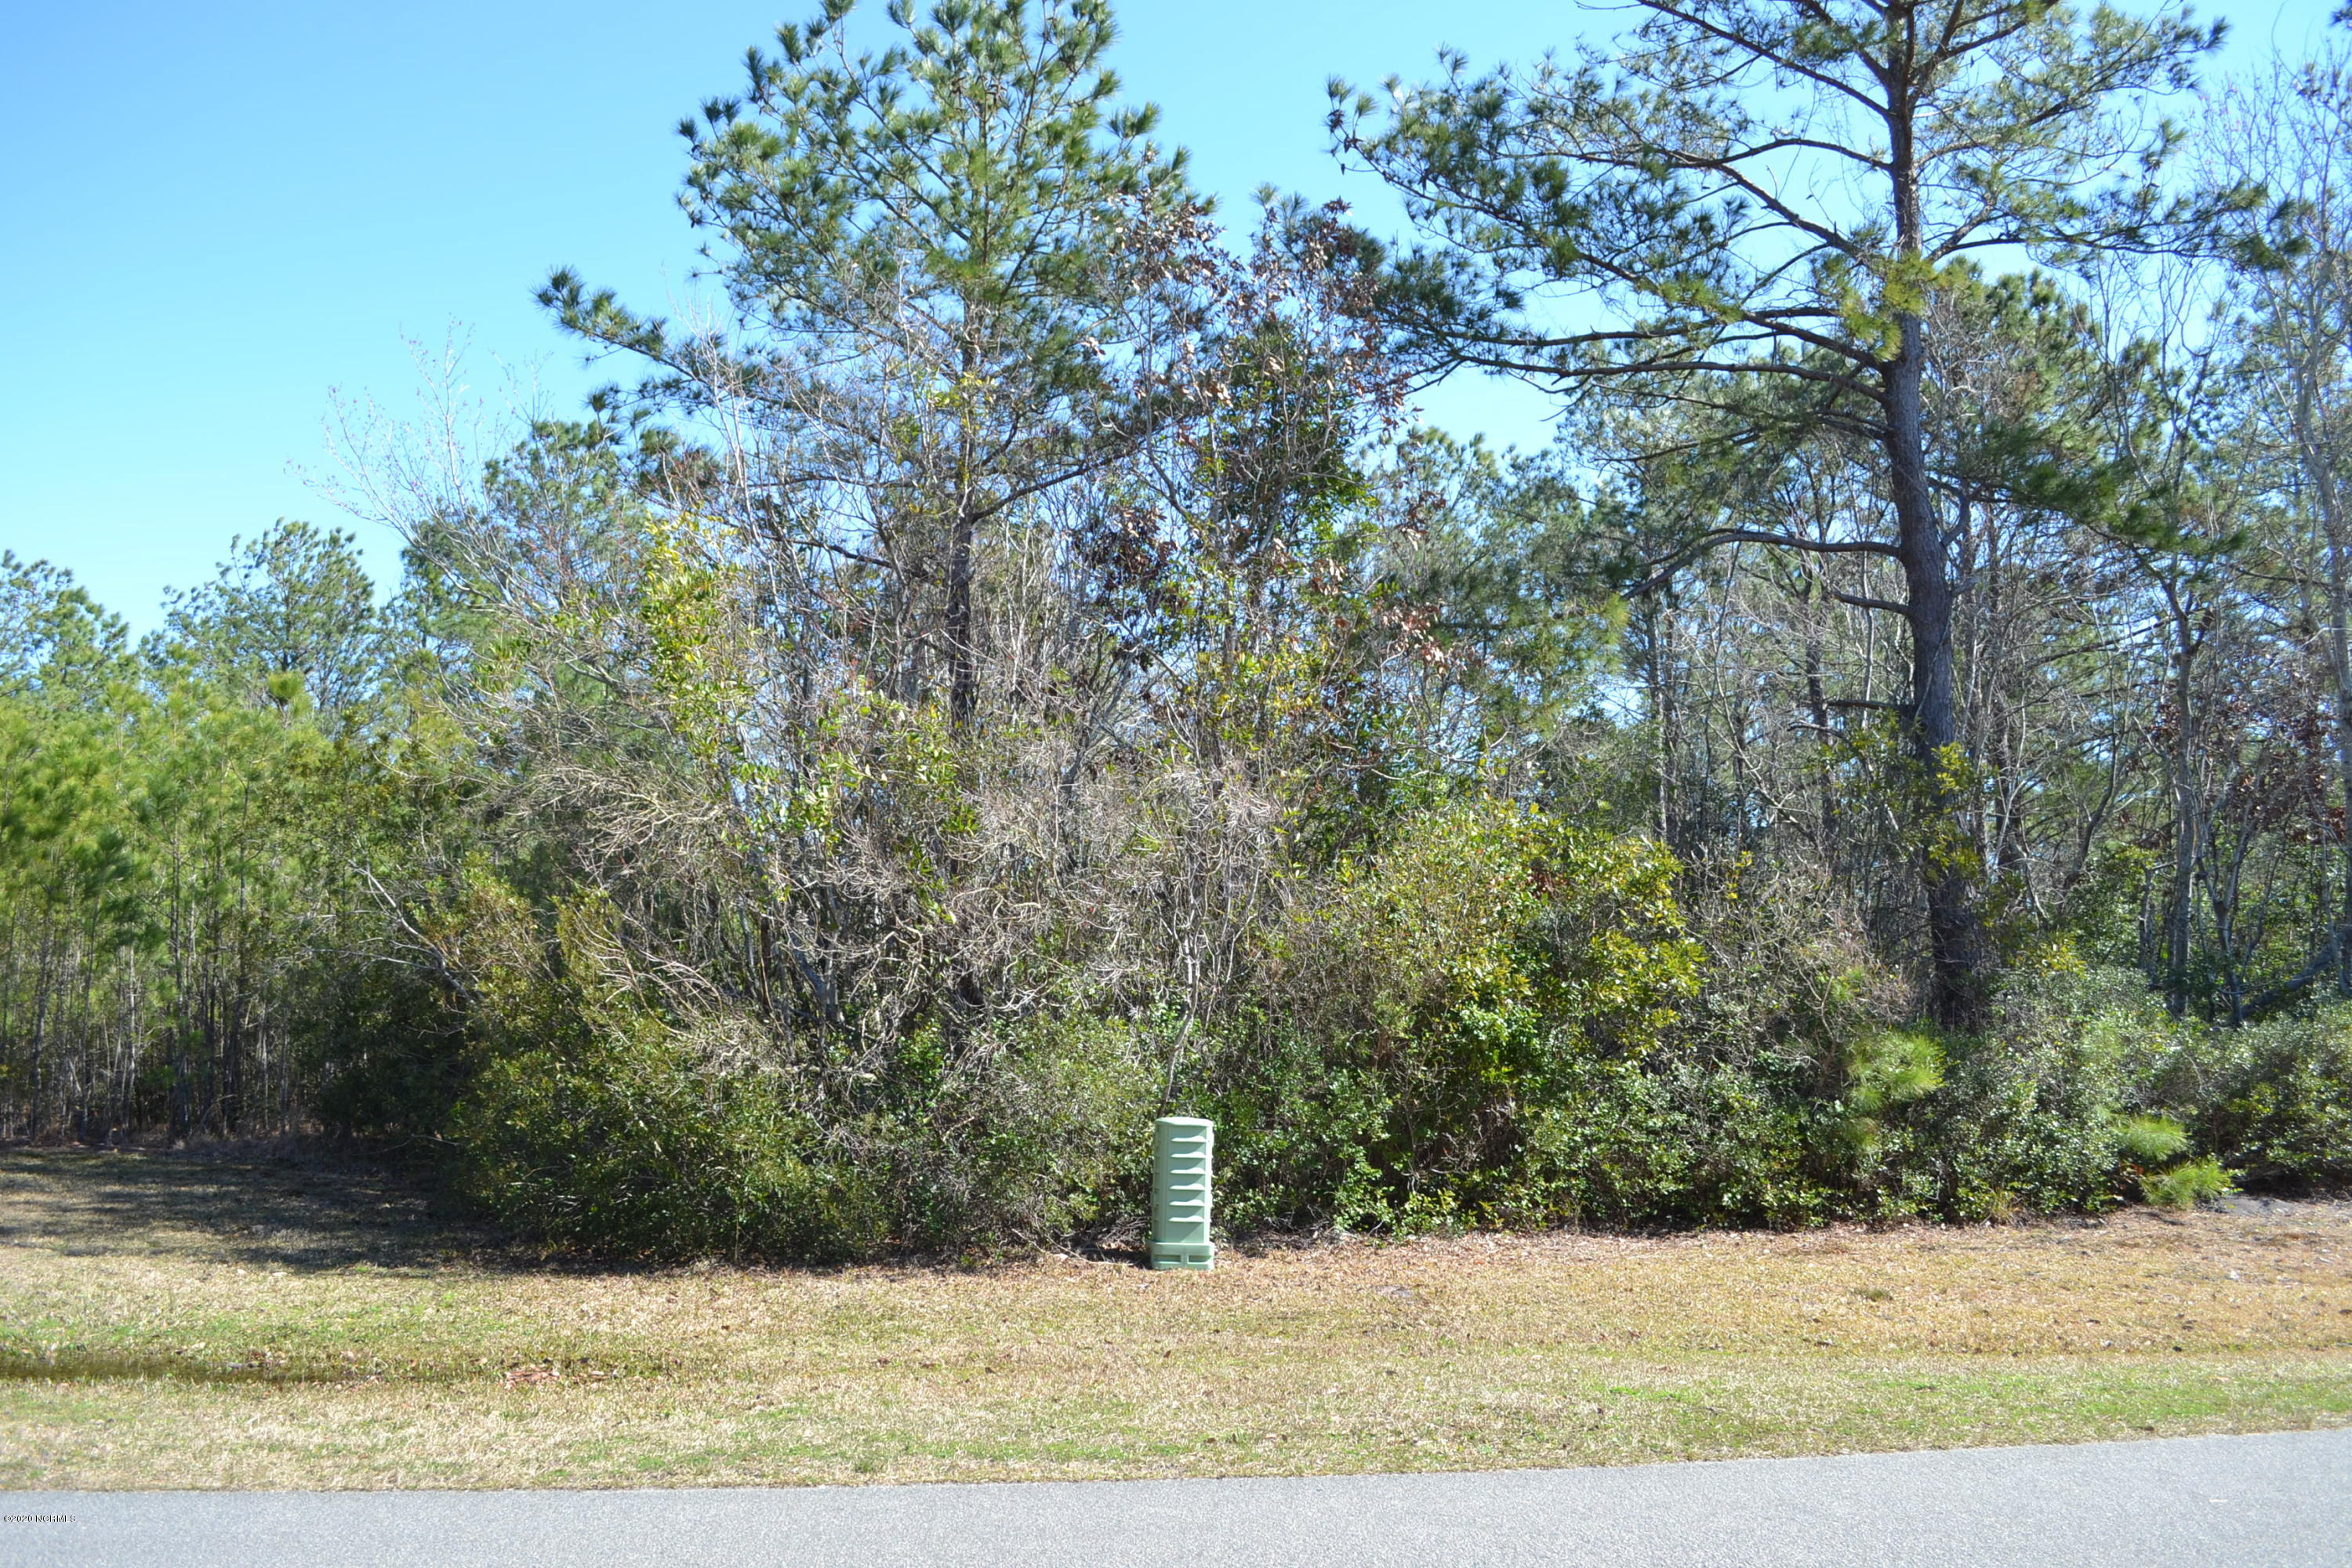 Come build your dream home on this beautiful half acre lot, located in the desirable neighborhood of Mimosa Bay. Mimosa Bay is a waterfront community and is only a short drive to North Topsail Beach. HOA the community boat launch and dock, clubhouse, pool, tennis court and much more.